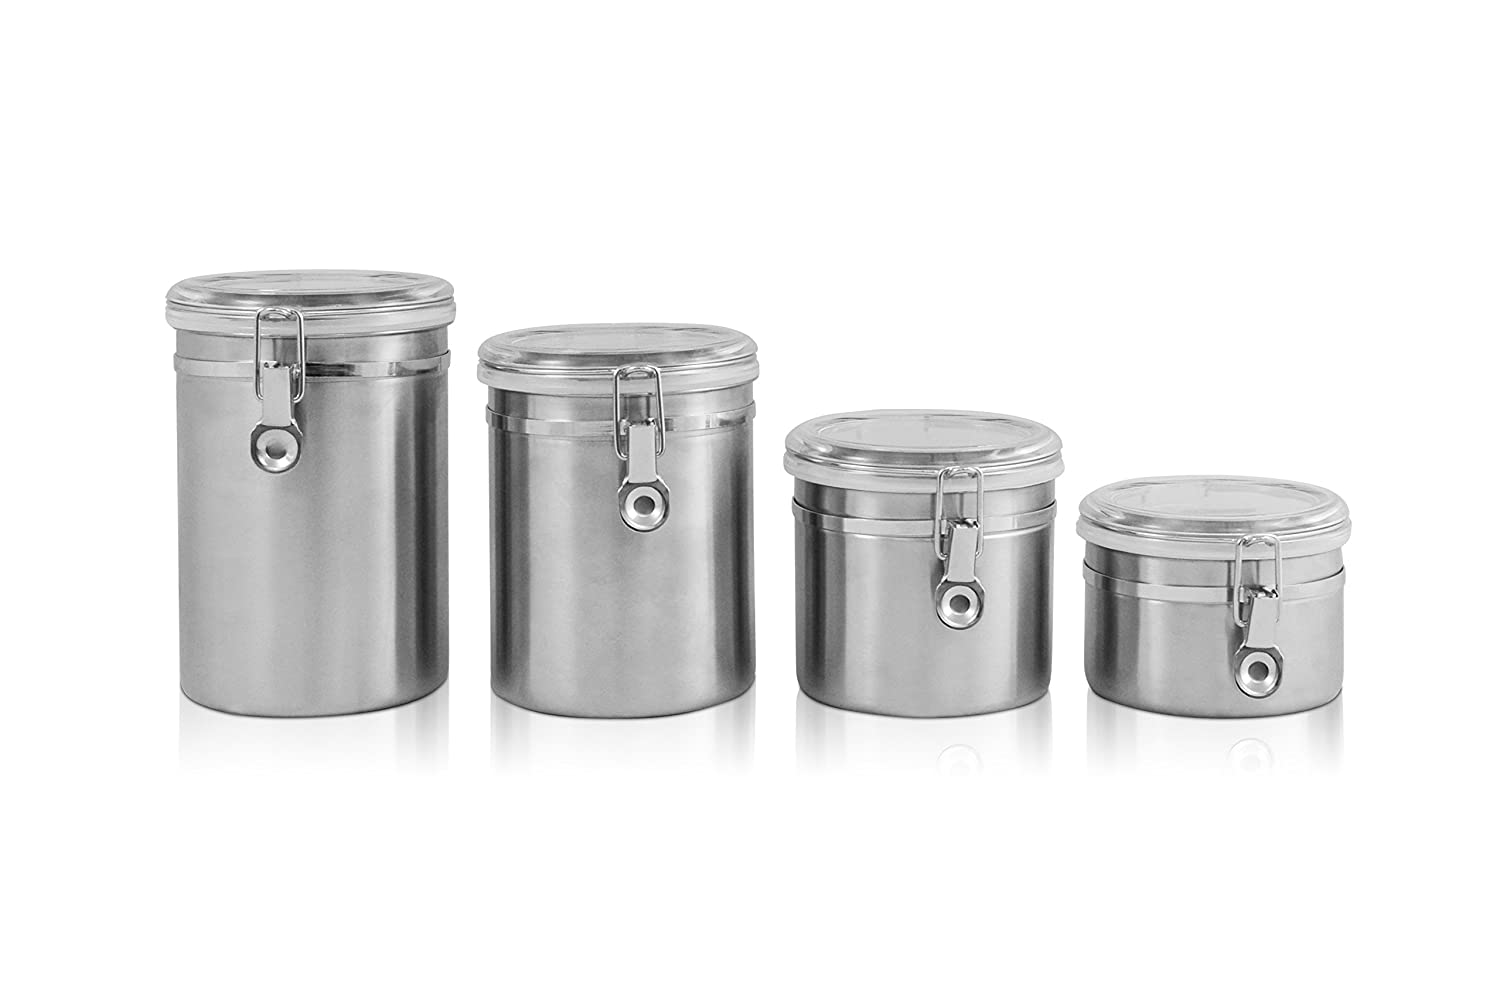 amazon com ragalta rca 045 4 piece stainless steel canister set amazon com ragalta rca 045 4 piece stainless steel canister set with airtight acrylic lids metallic kitchen storage and organization product sets